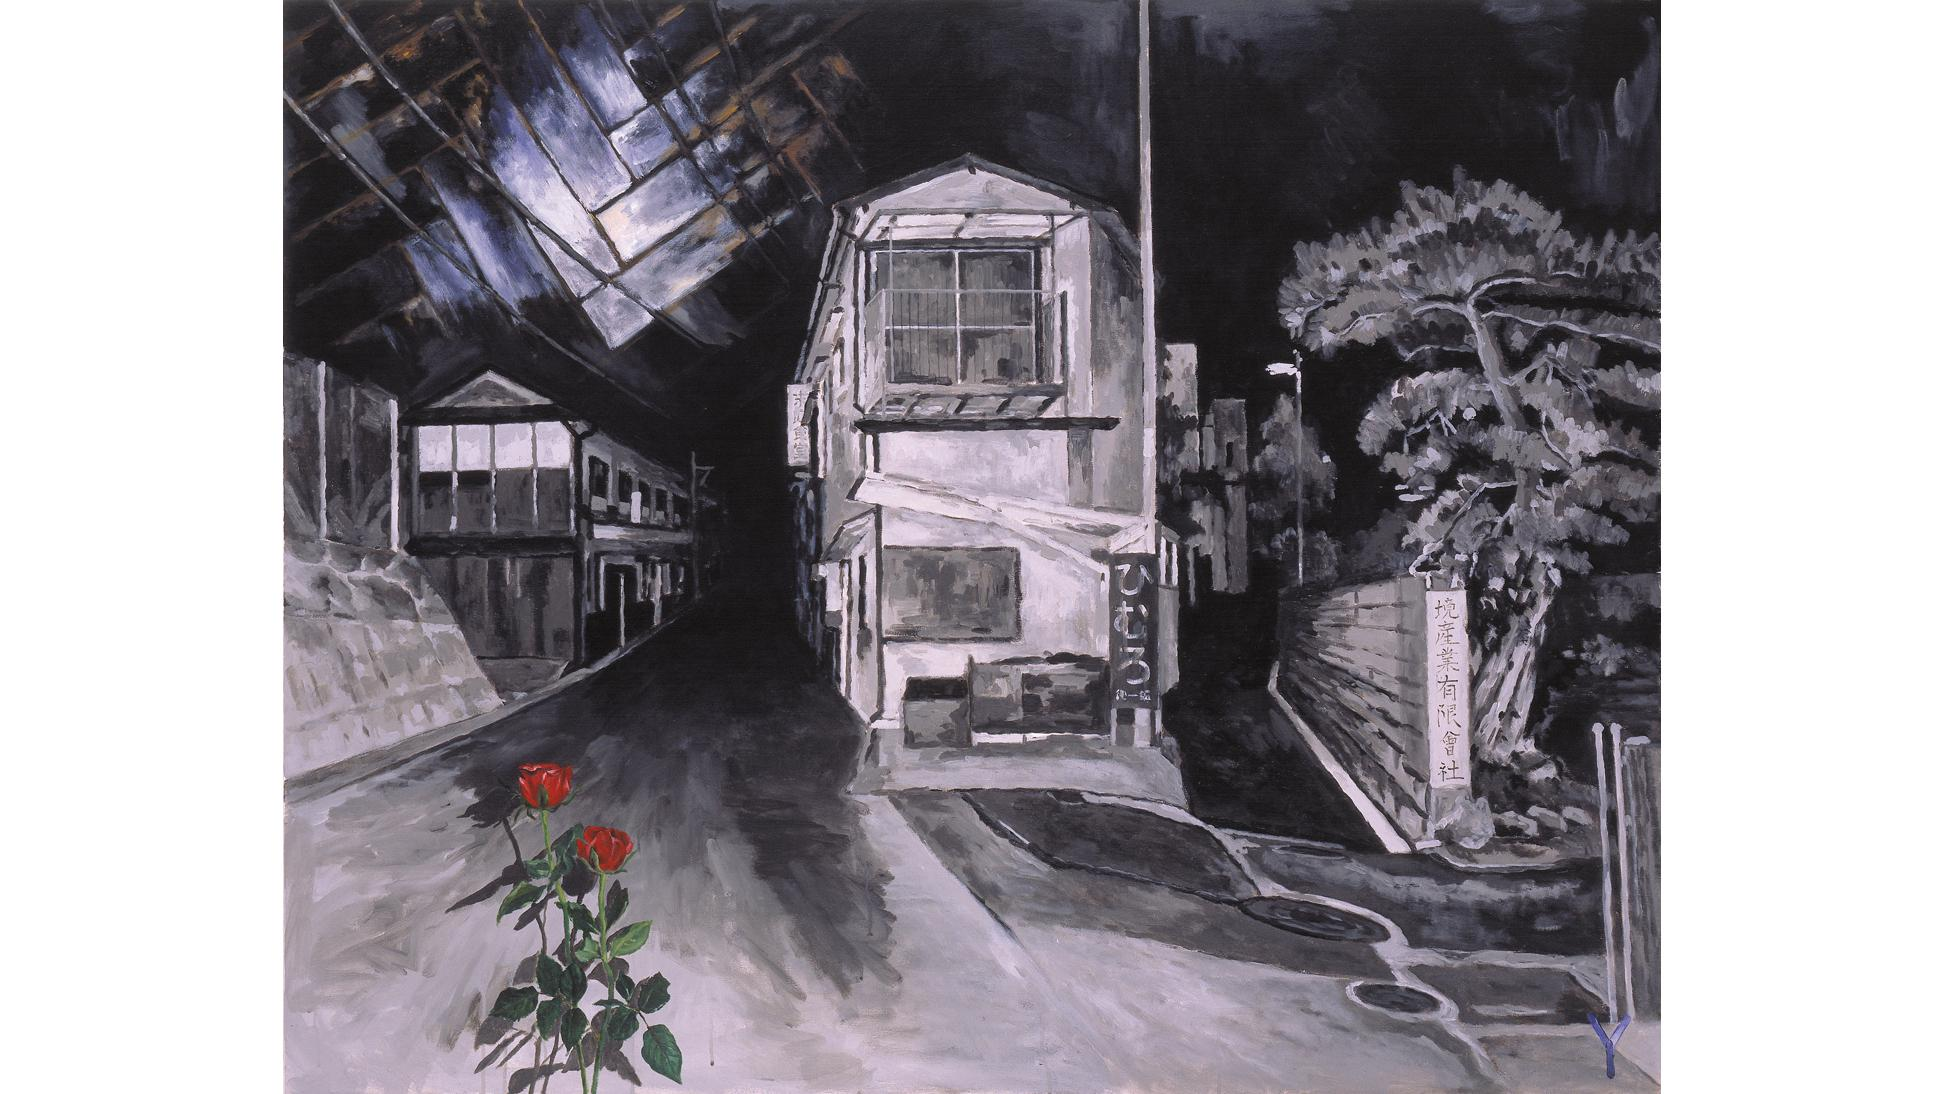 Tadanori Yokoo, A Dark Night's Flashing: Floor and Rose, 2001, Acrylic on canvas,h.130.3 x w.162.1cm